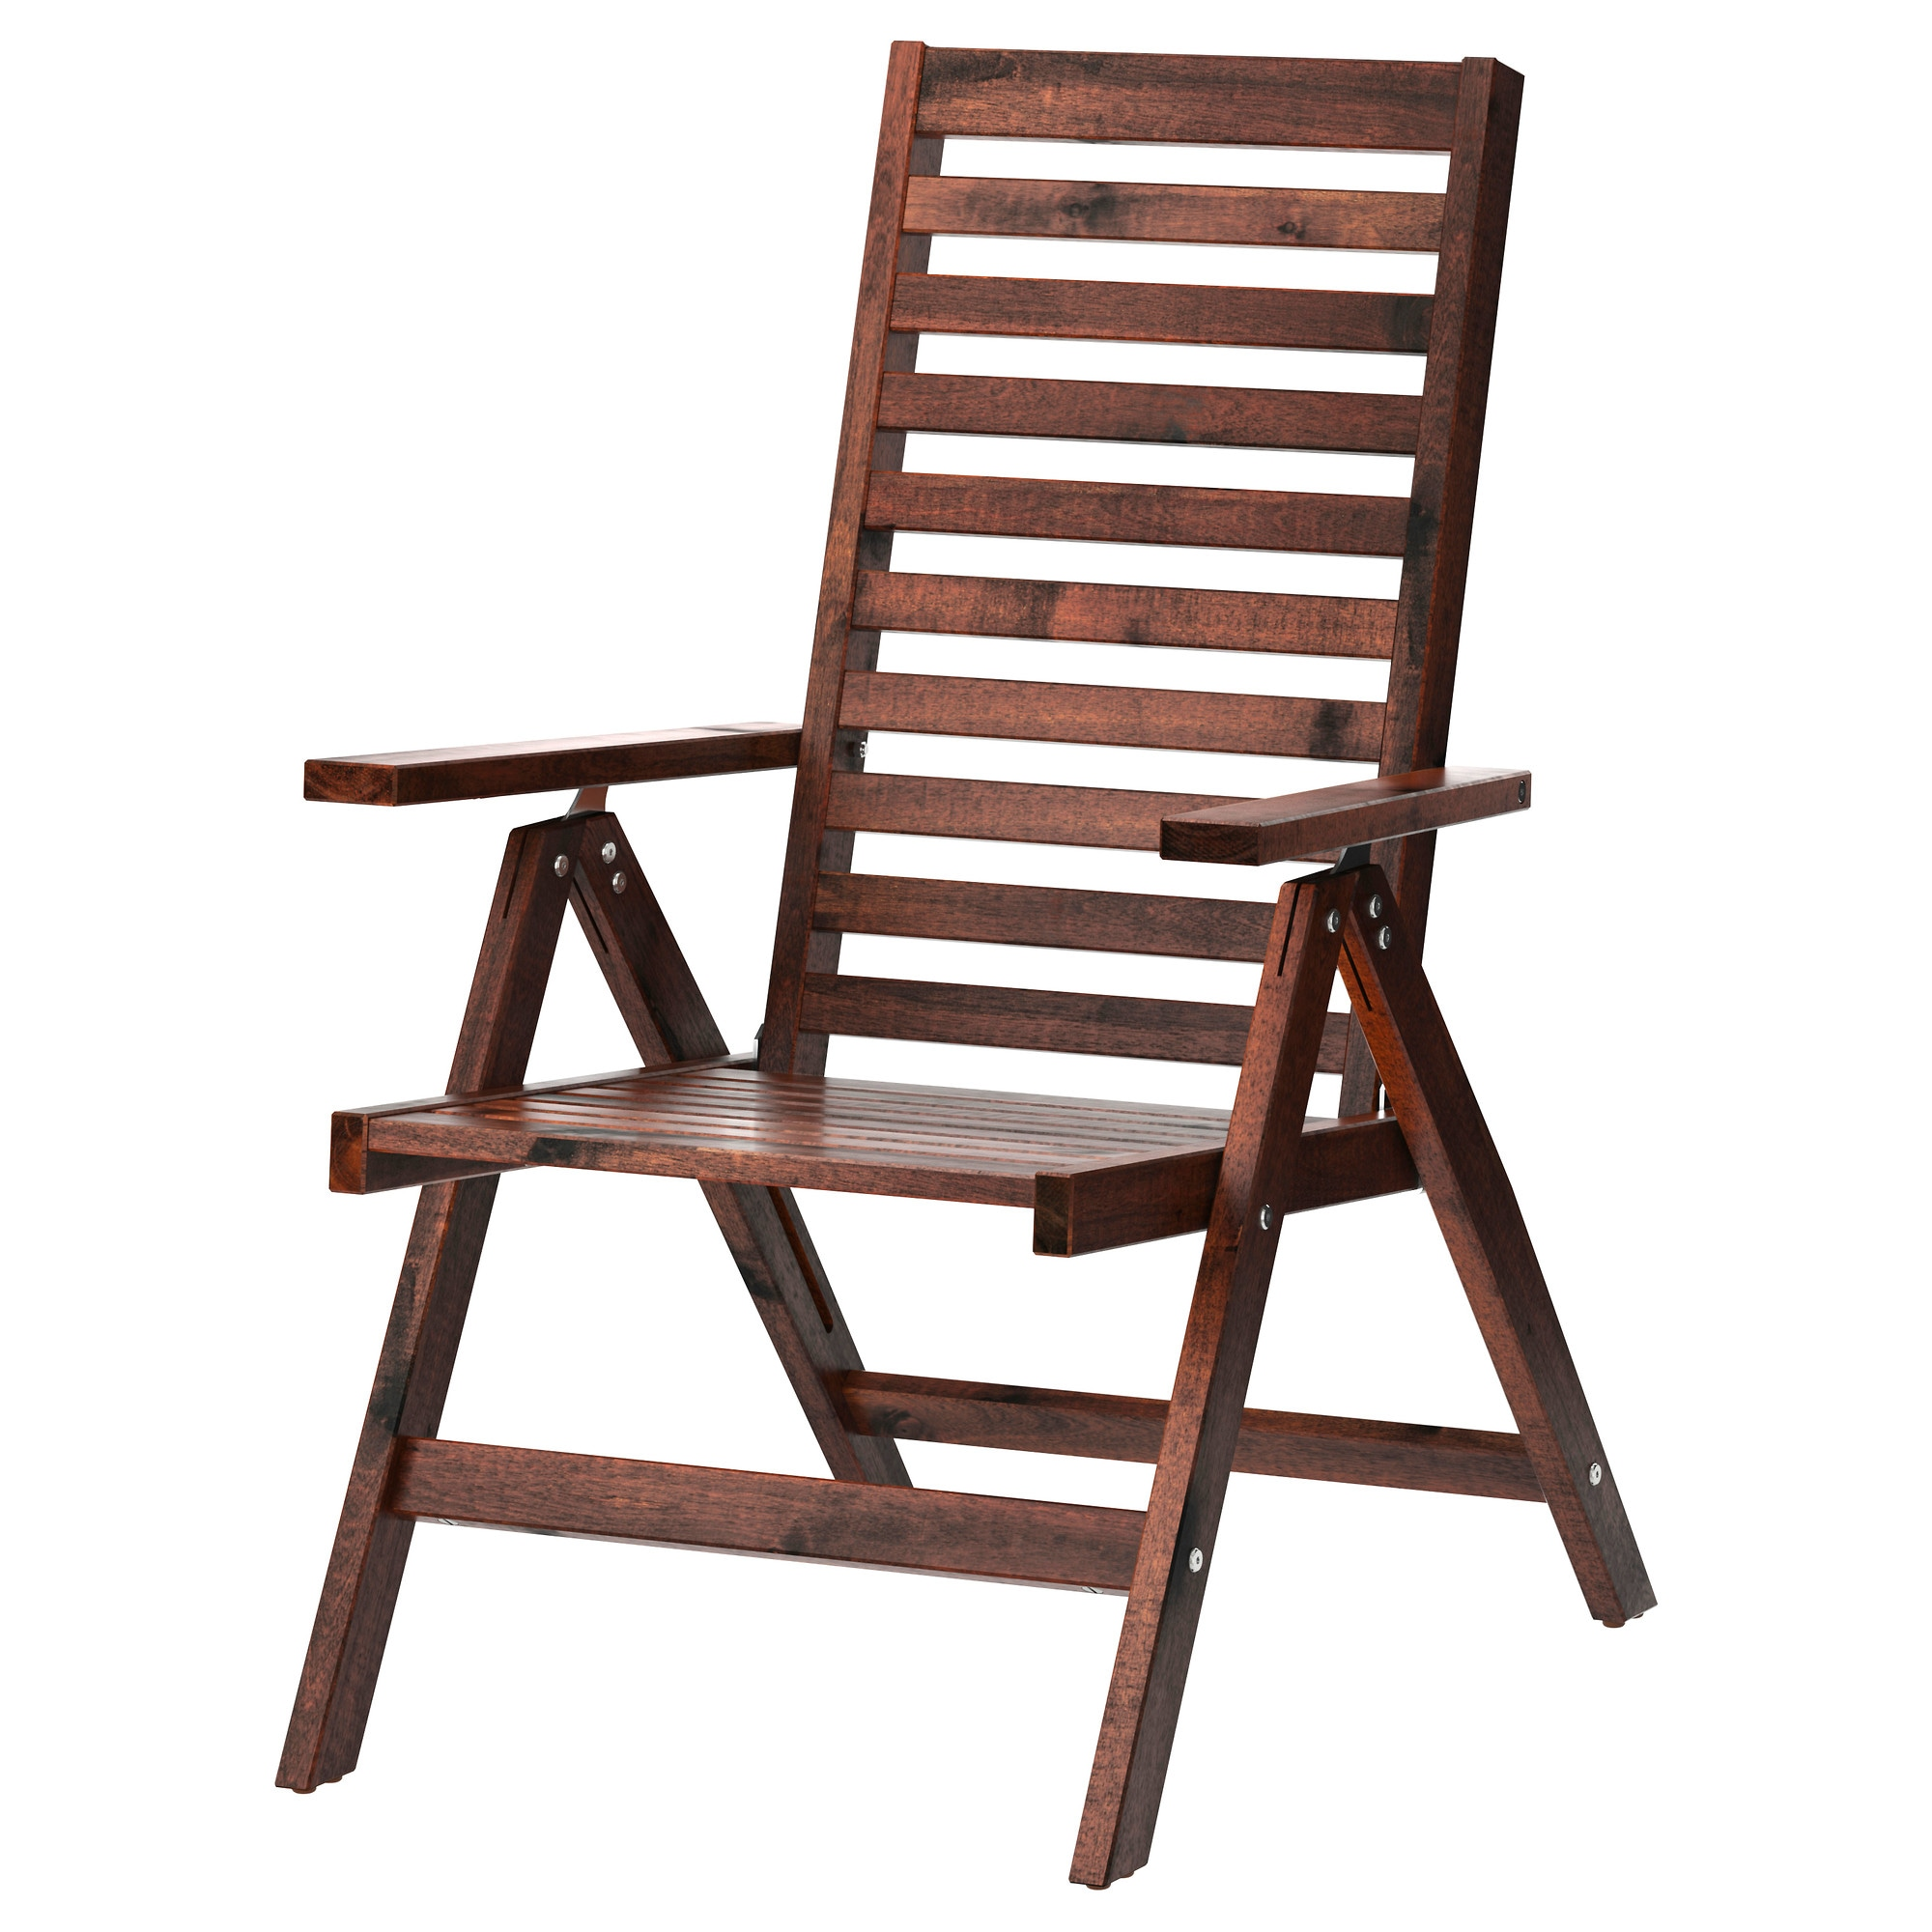 Wood folding chair outdoor -  Pplar Reclining Chair Outdoor Foldable Brown Brown Stained Brown Width 24 3